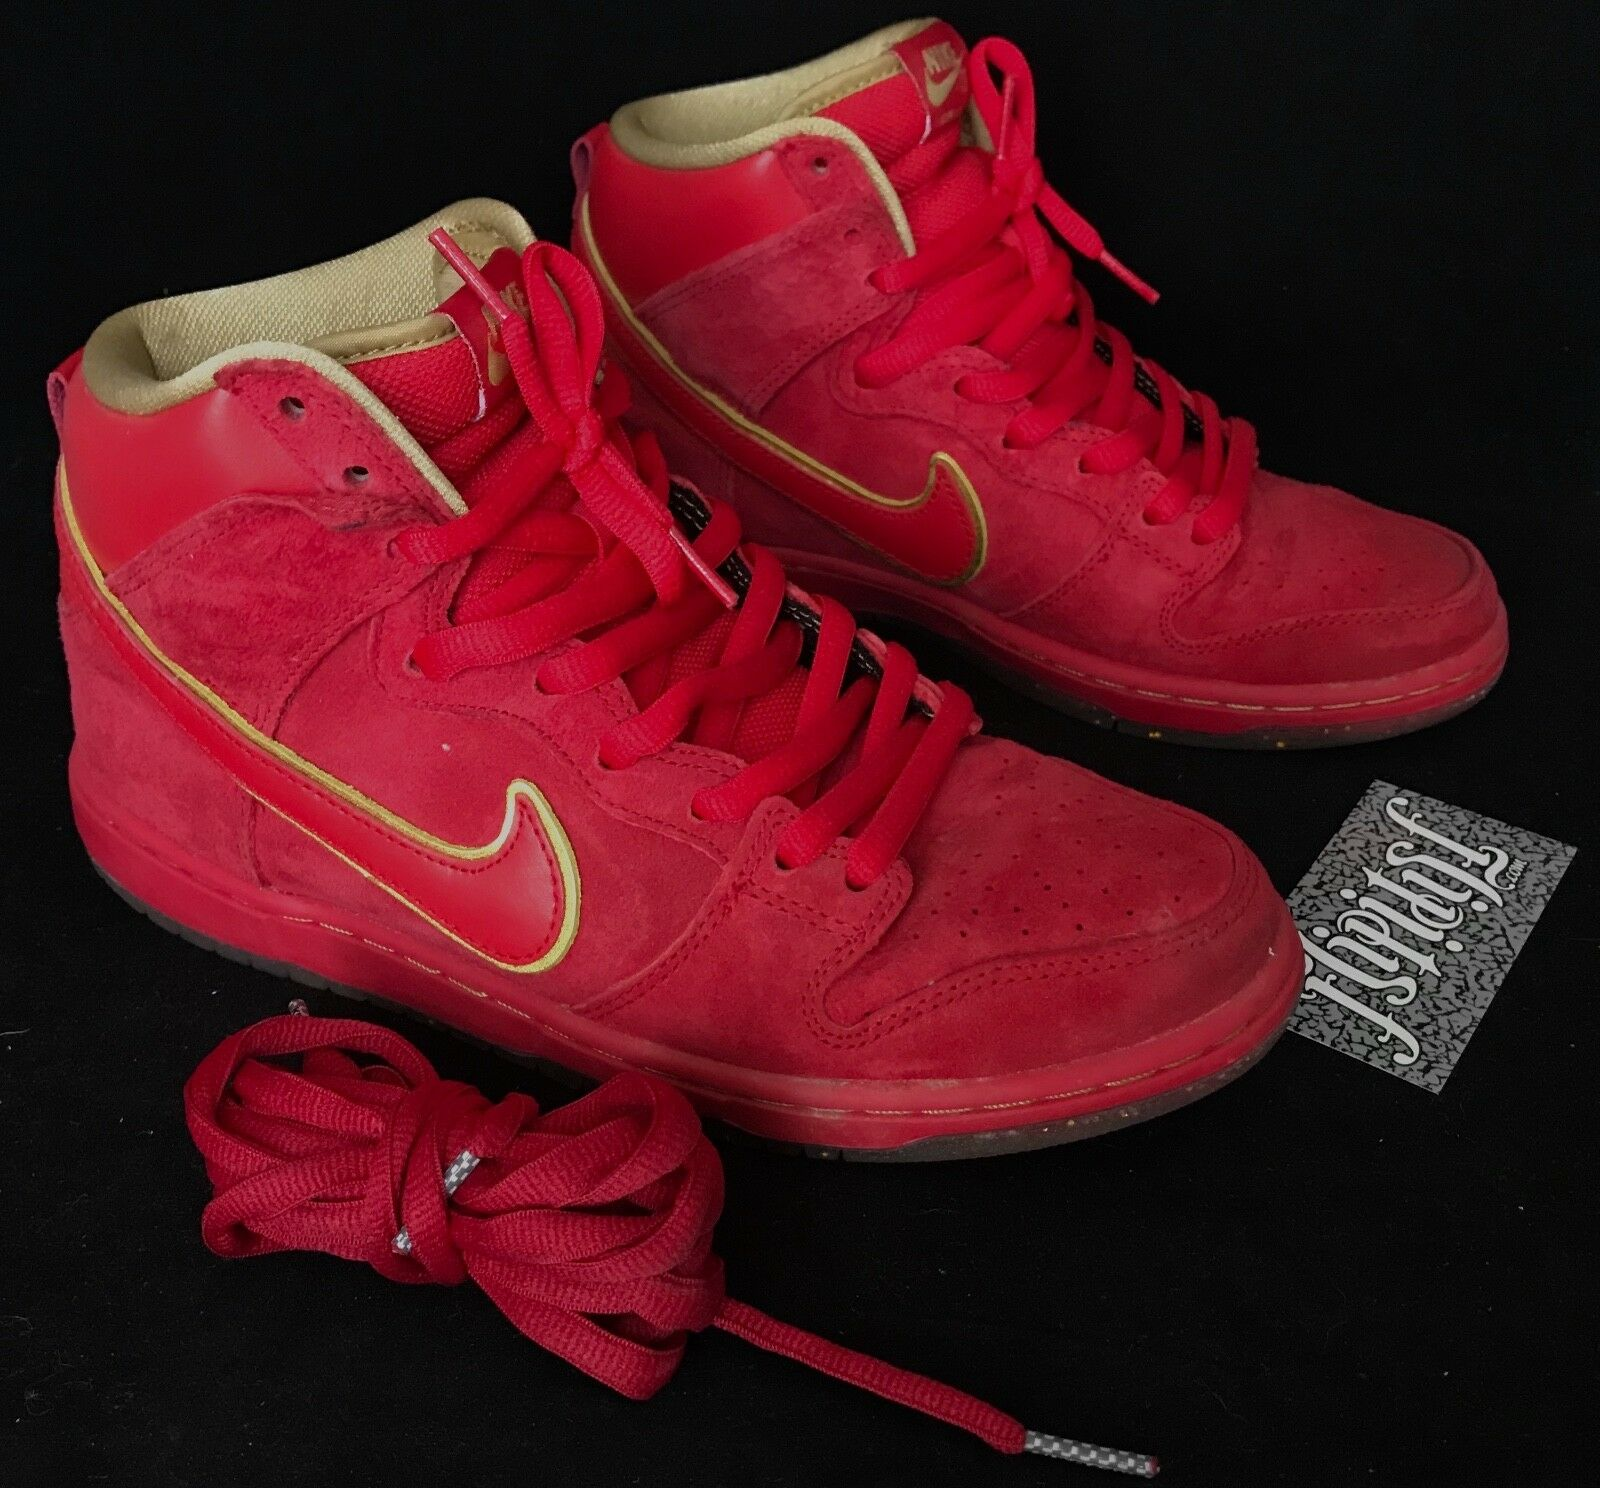 VTG NIKE SB DUNK HIGH CHINESE NEW YEAR HORSE RED CNY YOTH PIGEON SUPREME Price reduction New shoes for men and women, limited time discount